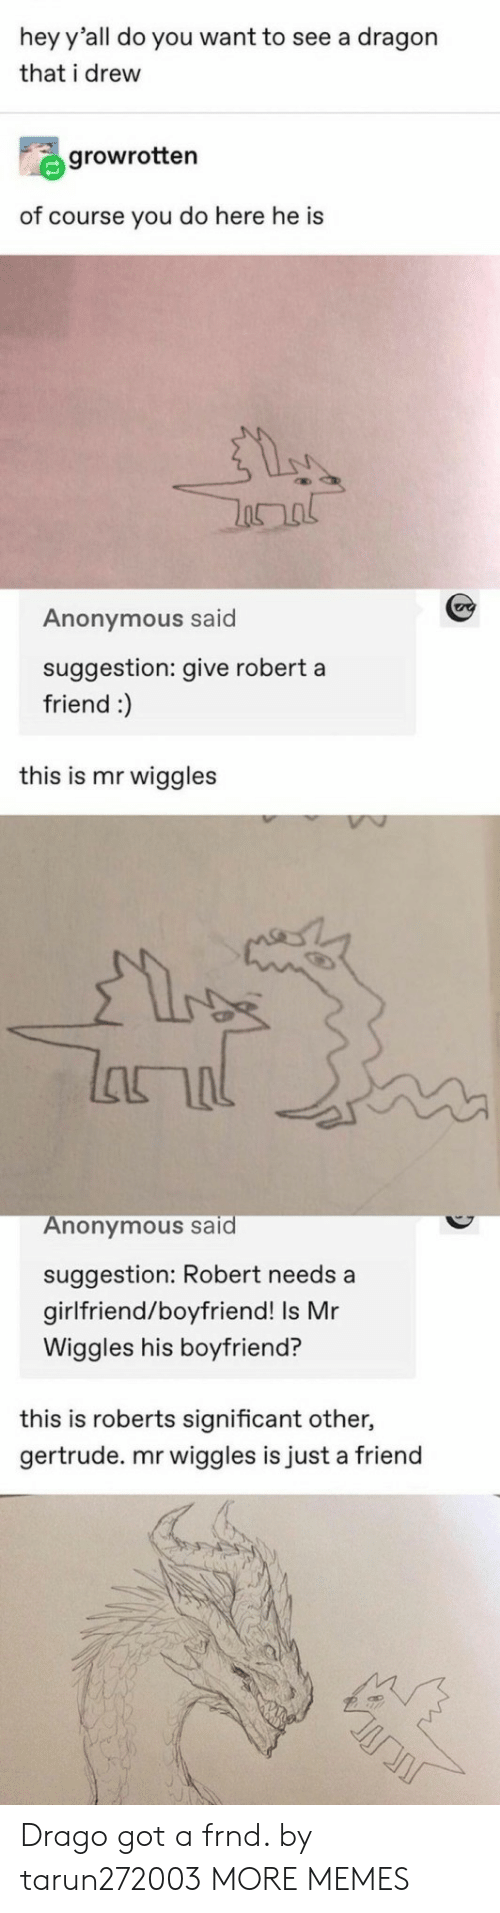 significant other: hey y'all do you want to see a dragon  that i drew  growrotten  of course you do here he is  Anonymous said  suggestion: give robert a  friend :)  this is mr wiggles  lanal  Anonymous said  suggestion: Robert needs a  girlfriend/boyfriend! Is Mr  Wiggles his boyfriend?  this is roberts significant other,  gertrude. mr wiggles is just a friend Drago got a frnd. by tarun272003 MORE MEMES